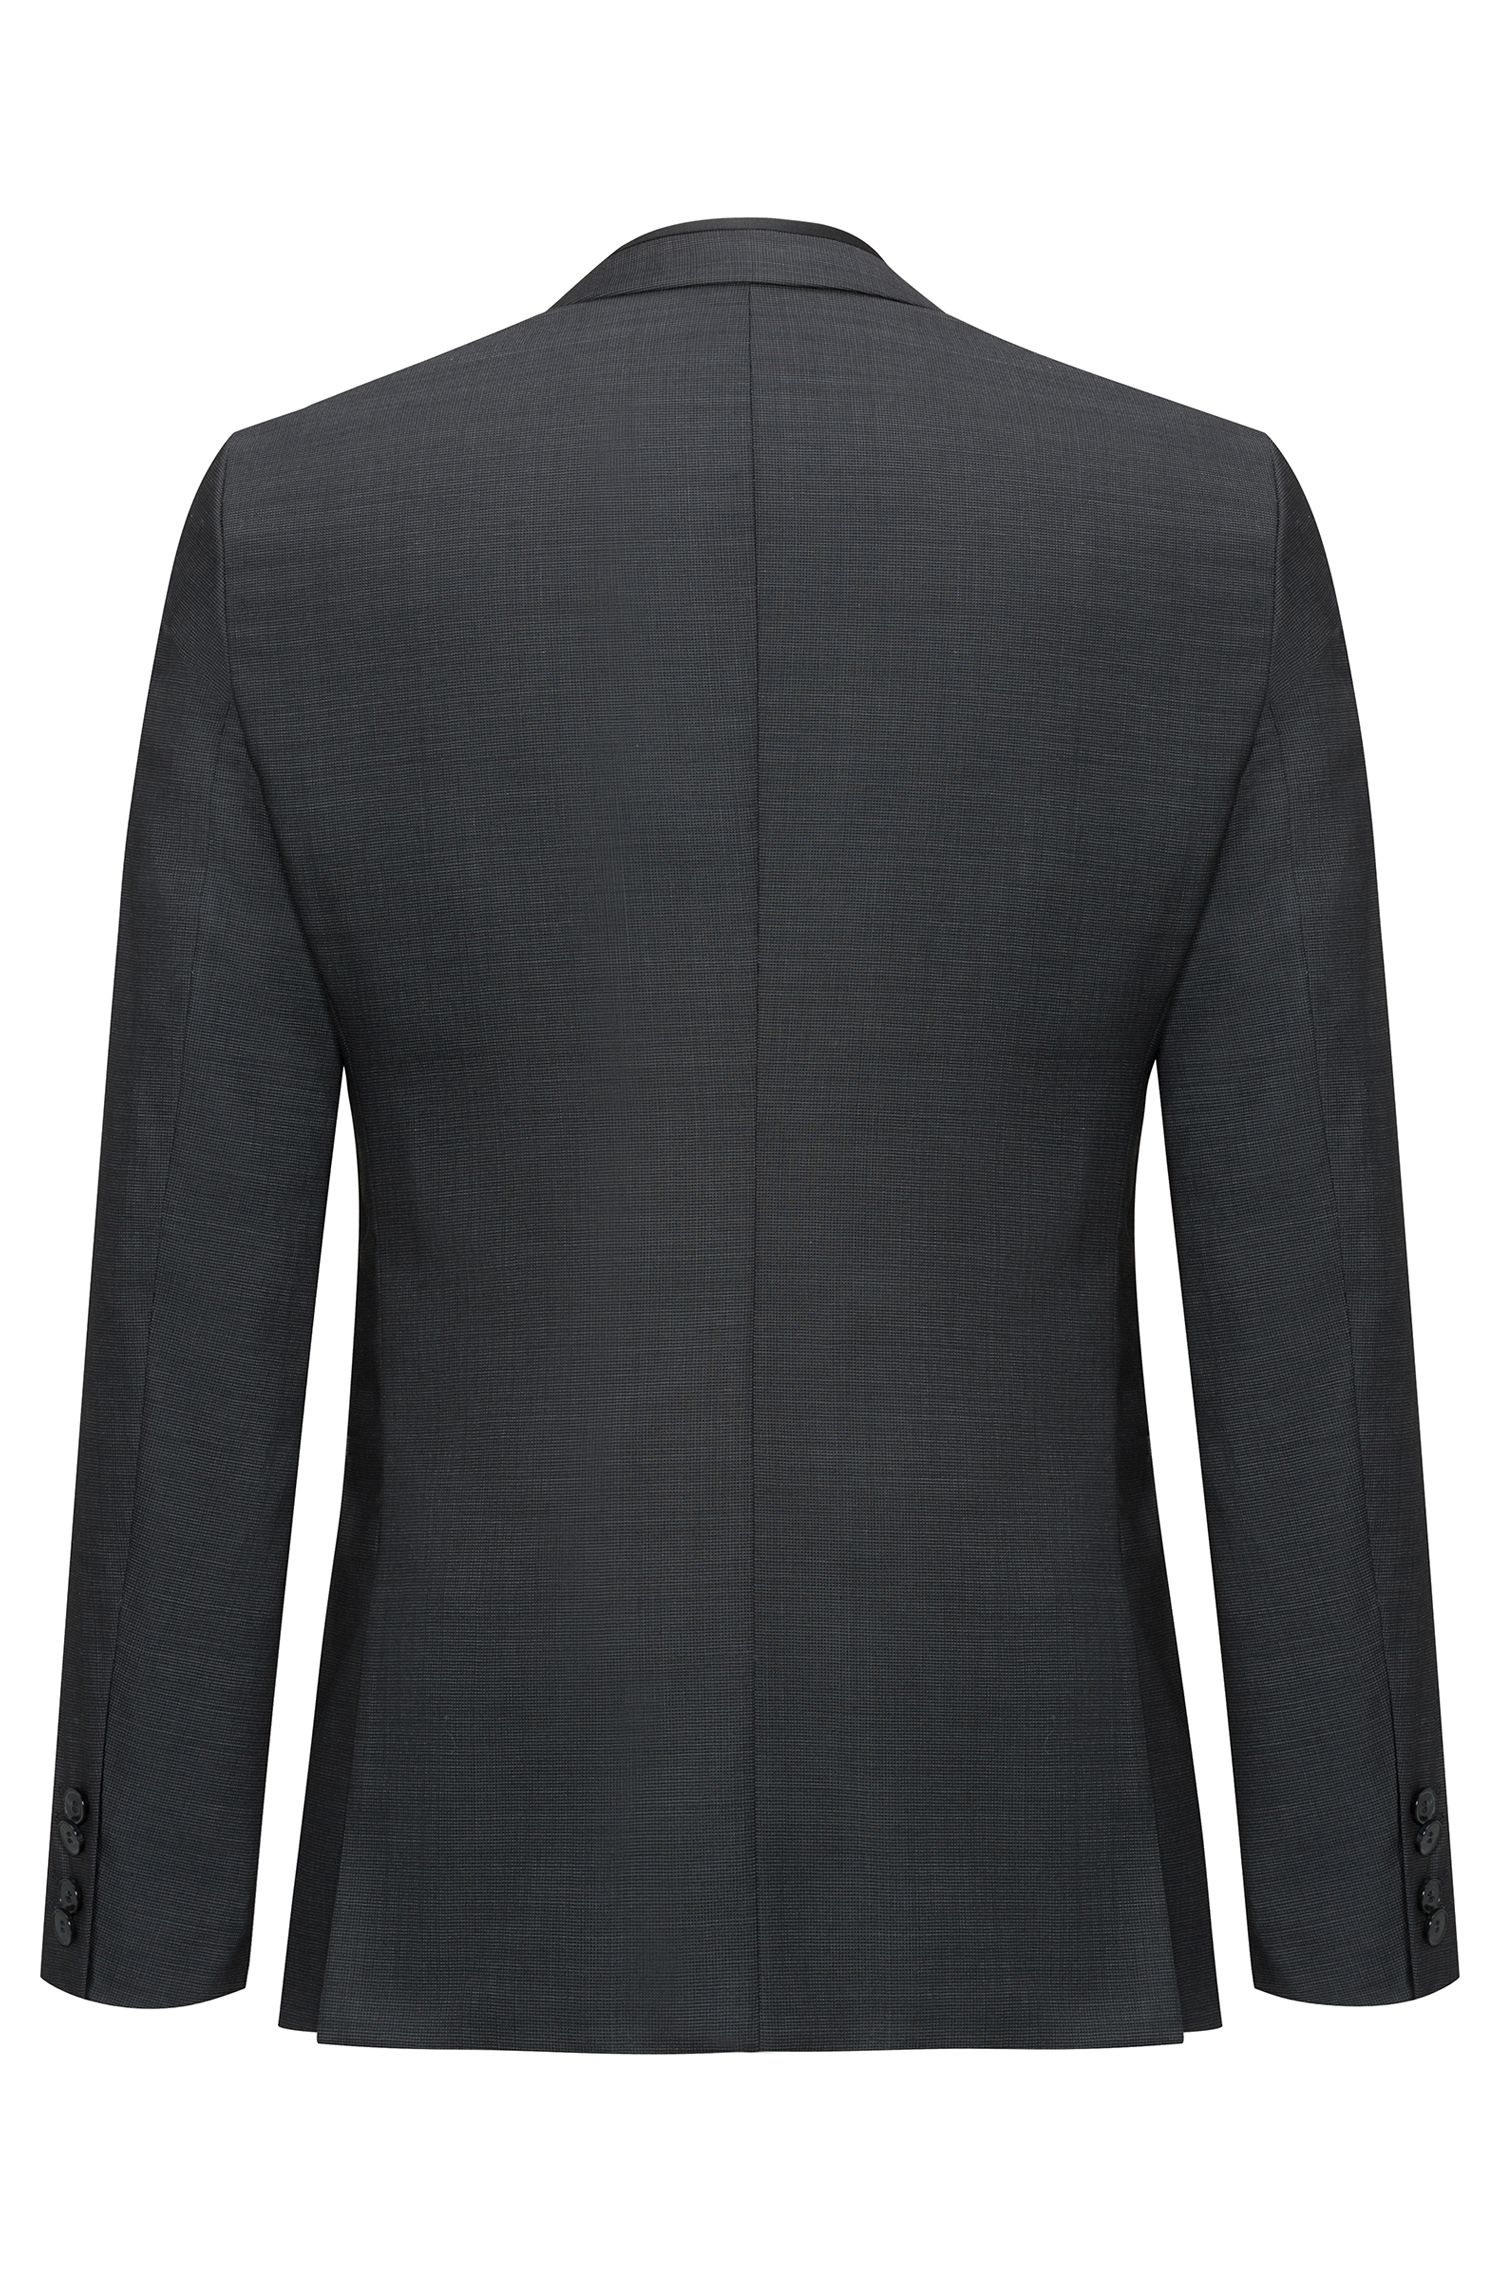 Italian Virgin Wool 3-Piece Suit, Extra Slim Fit | Phil/Taylor, Black